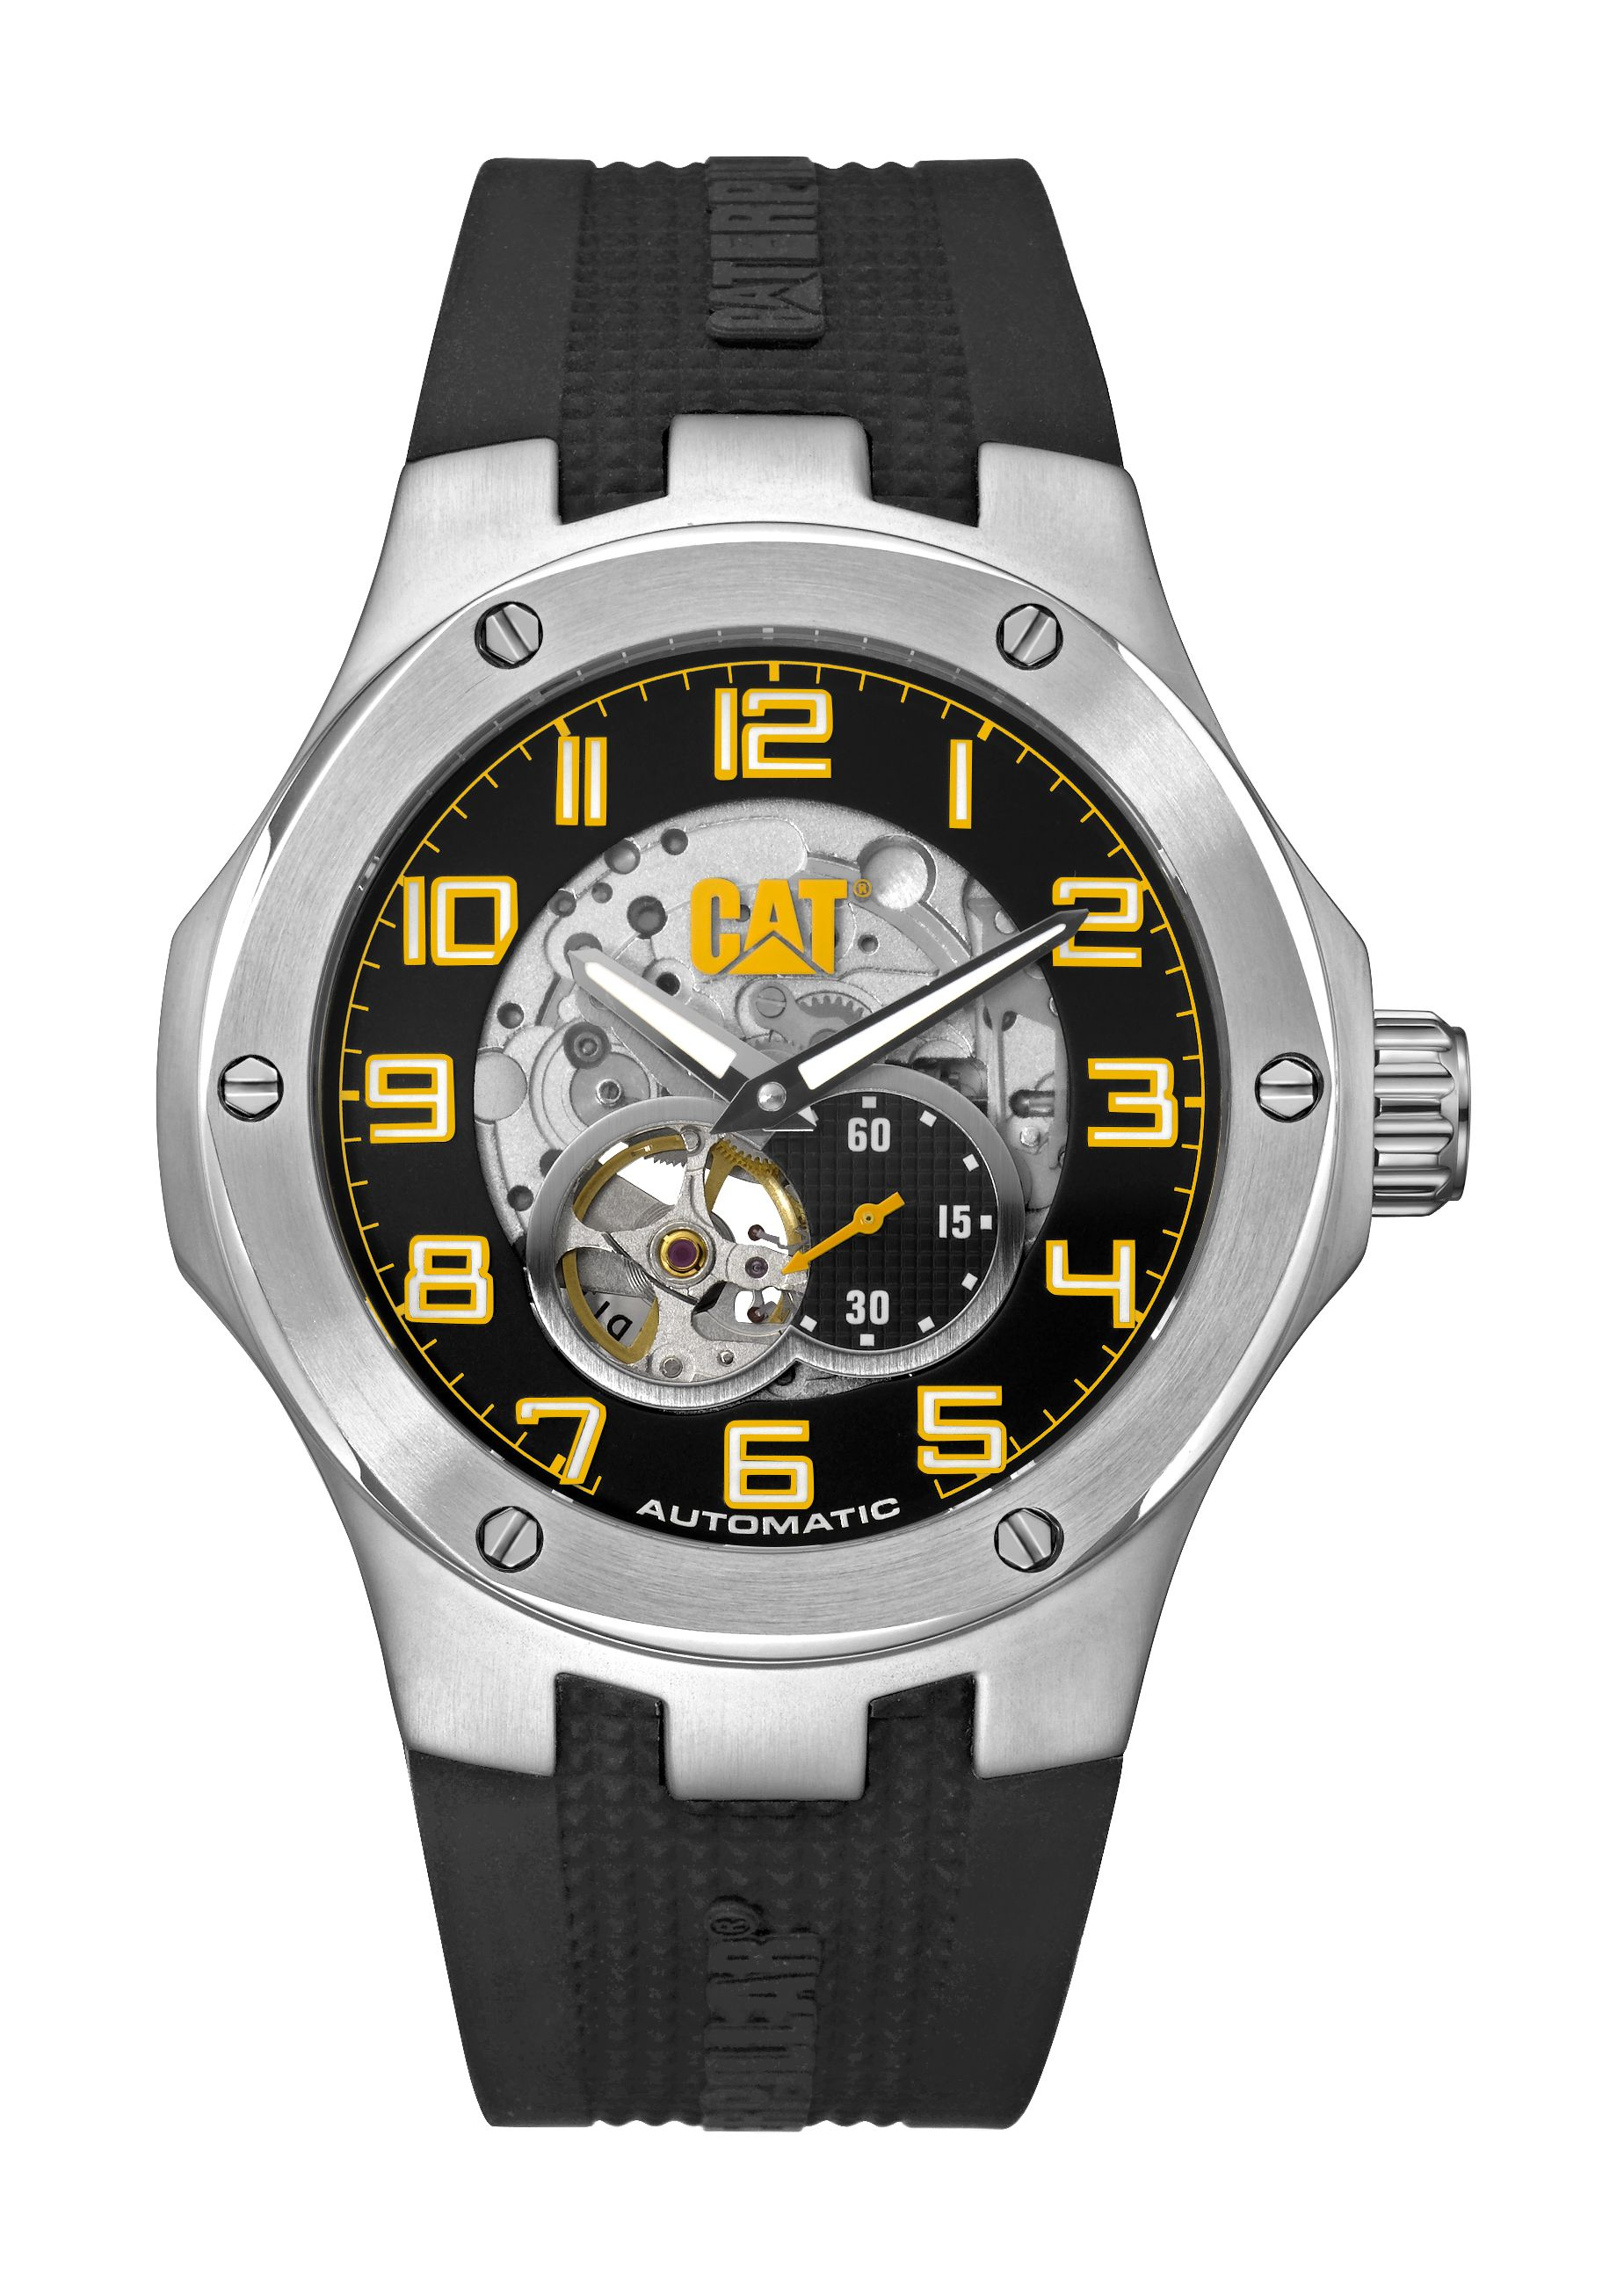 71d1a5010 Cat watches automatic navigo mens watch with silicone strap and stainless  steel case / A8.148.21.111